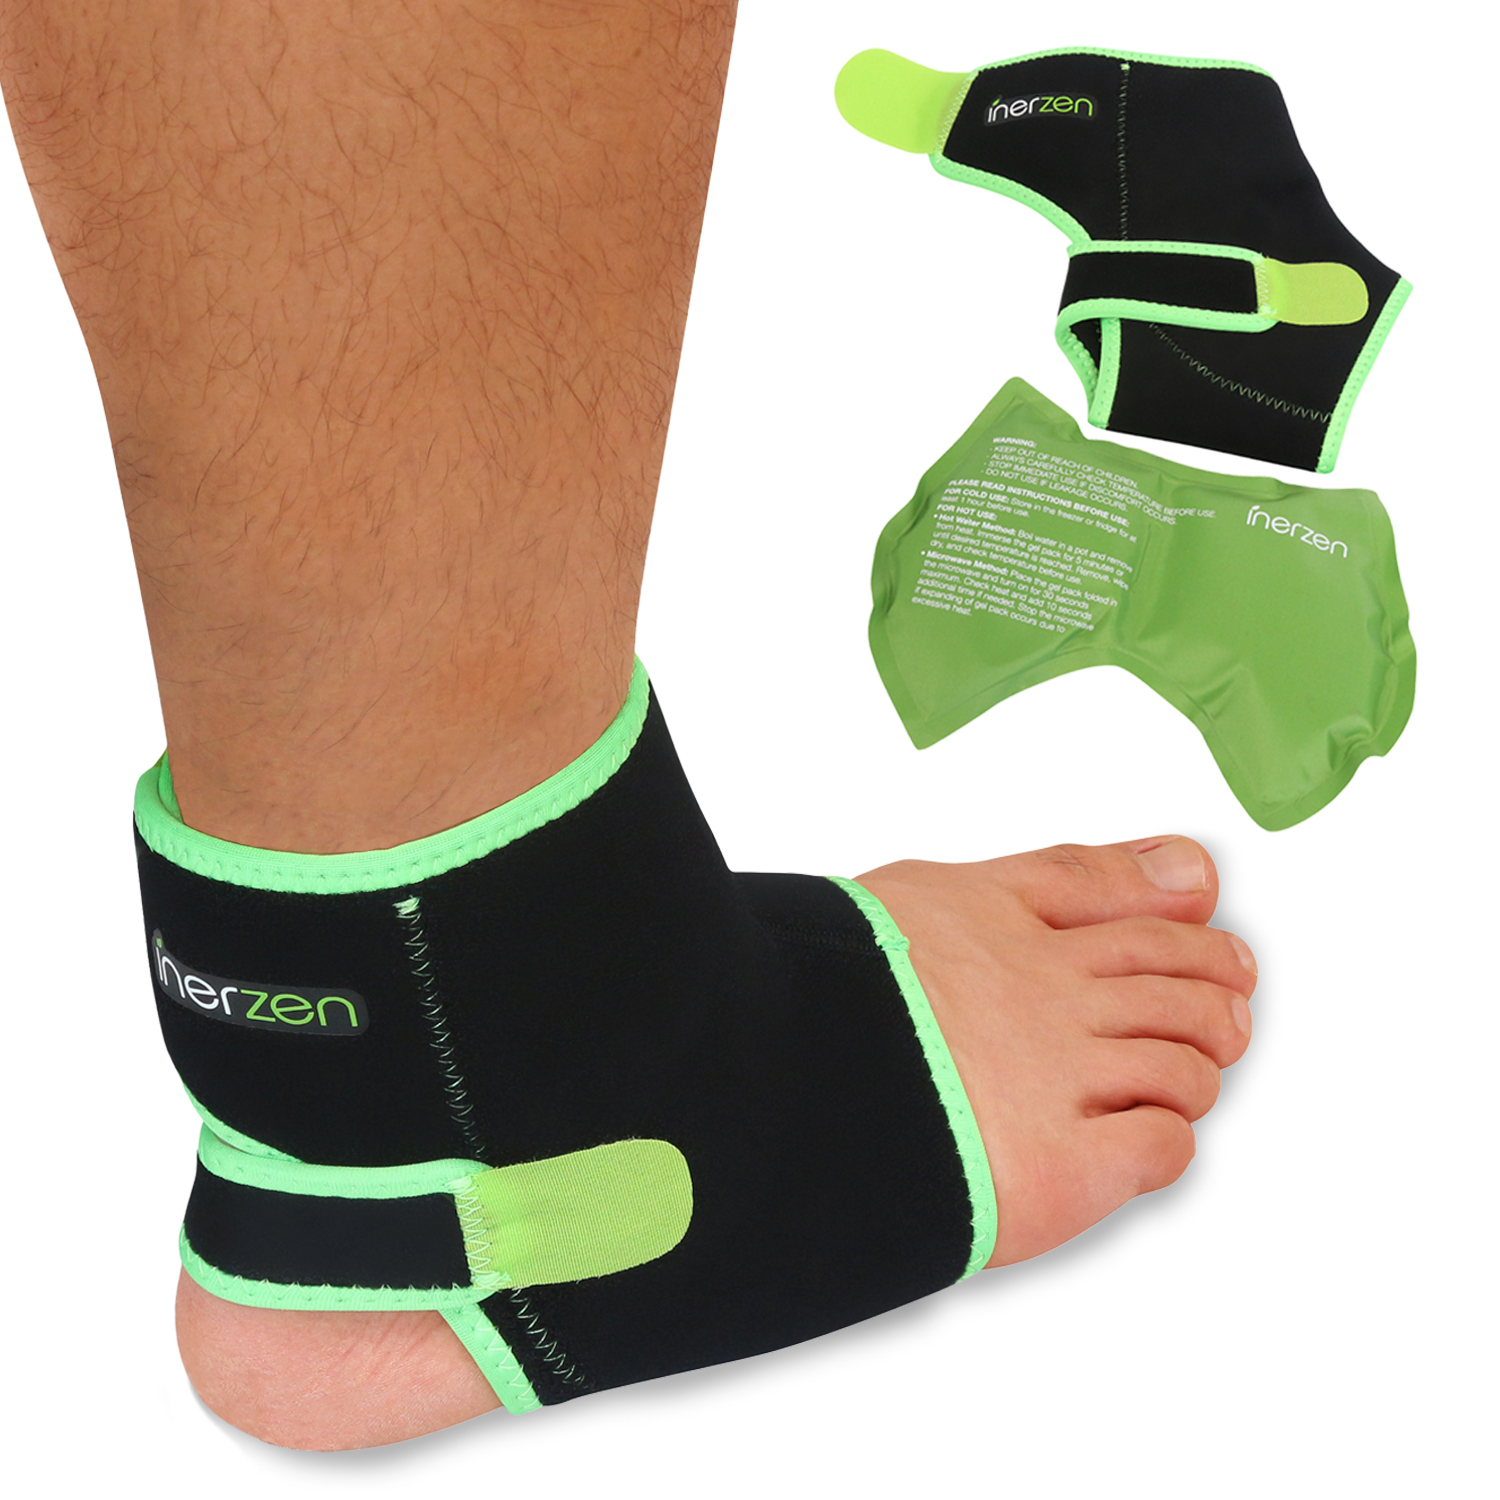 Inerzen Ankle Support Hot and Cold Gel Therapy Wrap - Includes Hot or Cold Gel Pack for Pain Relief – Microwavable, Freezable, Reusable (One Size Fits All)